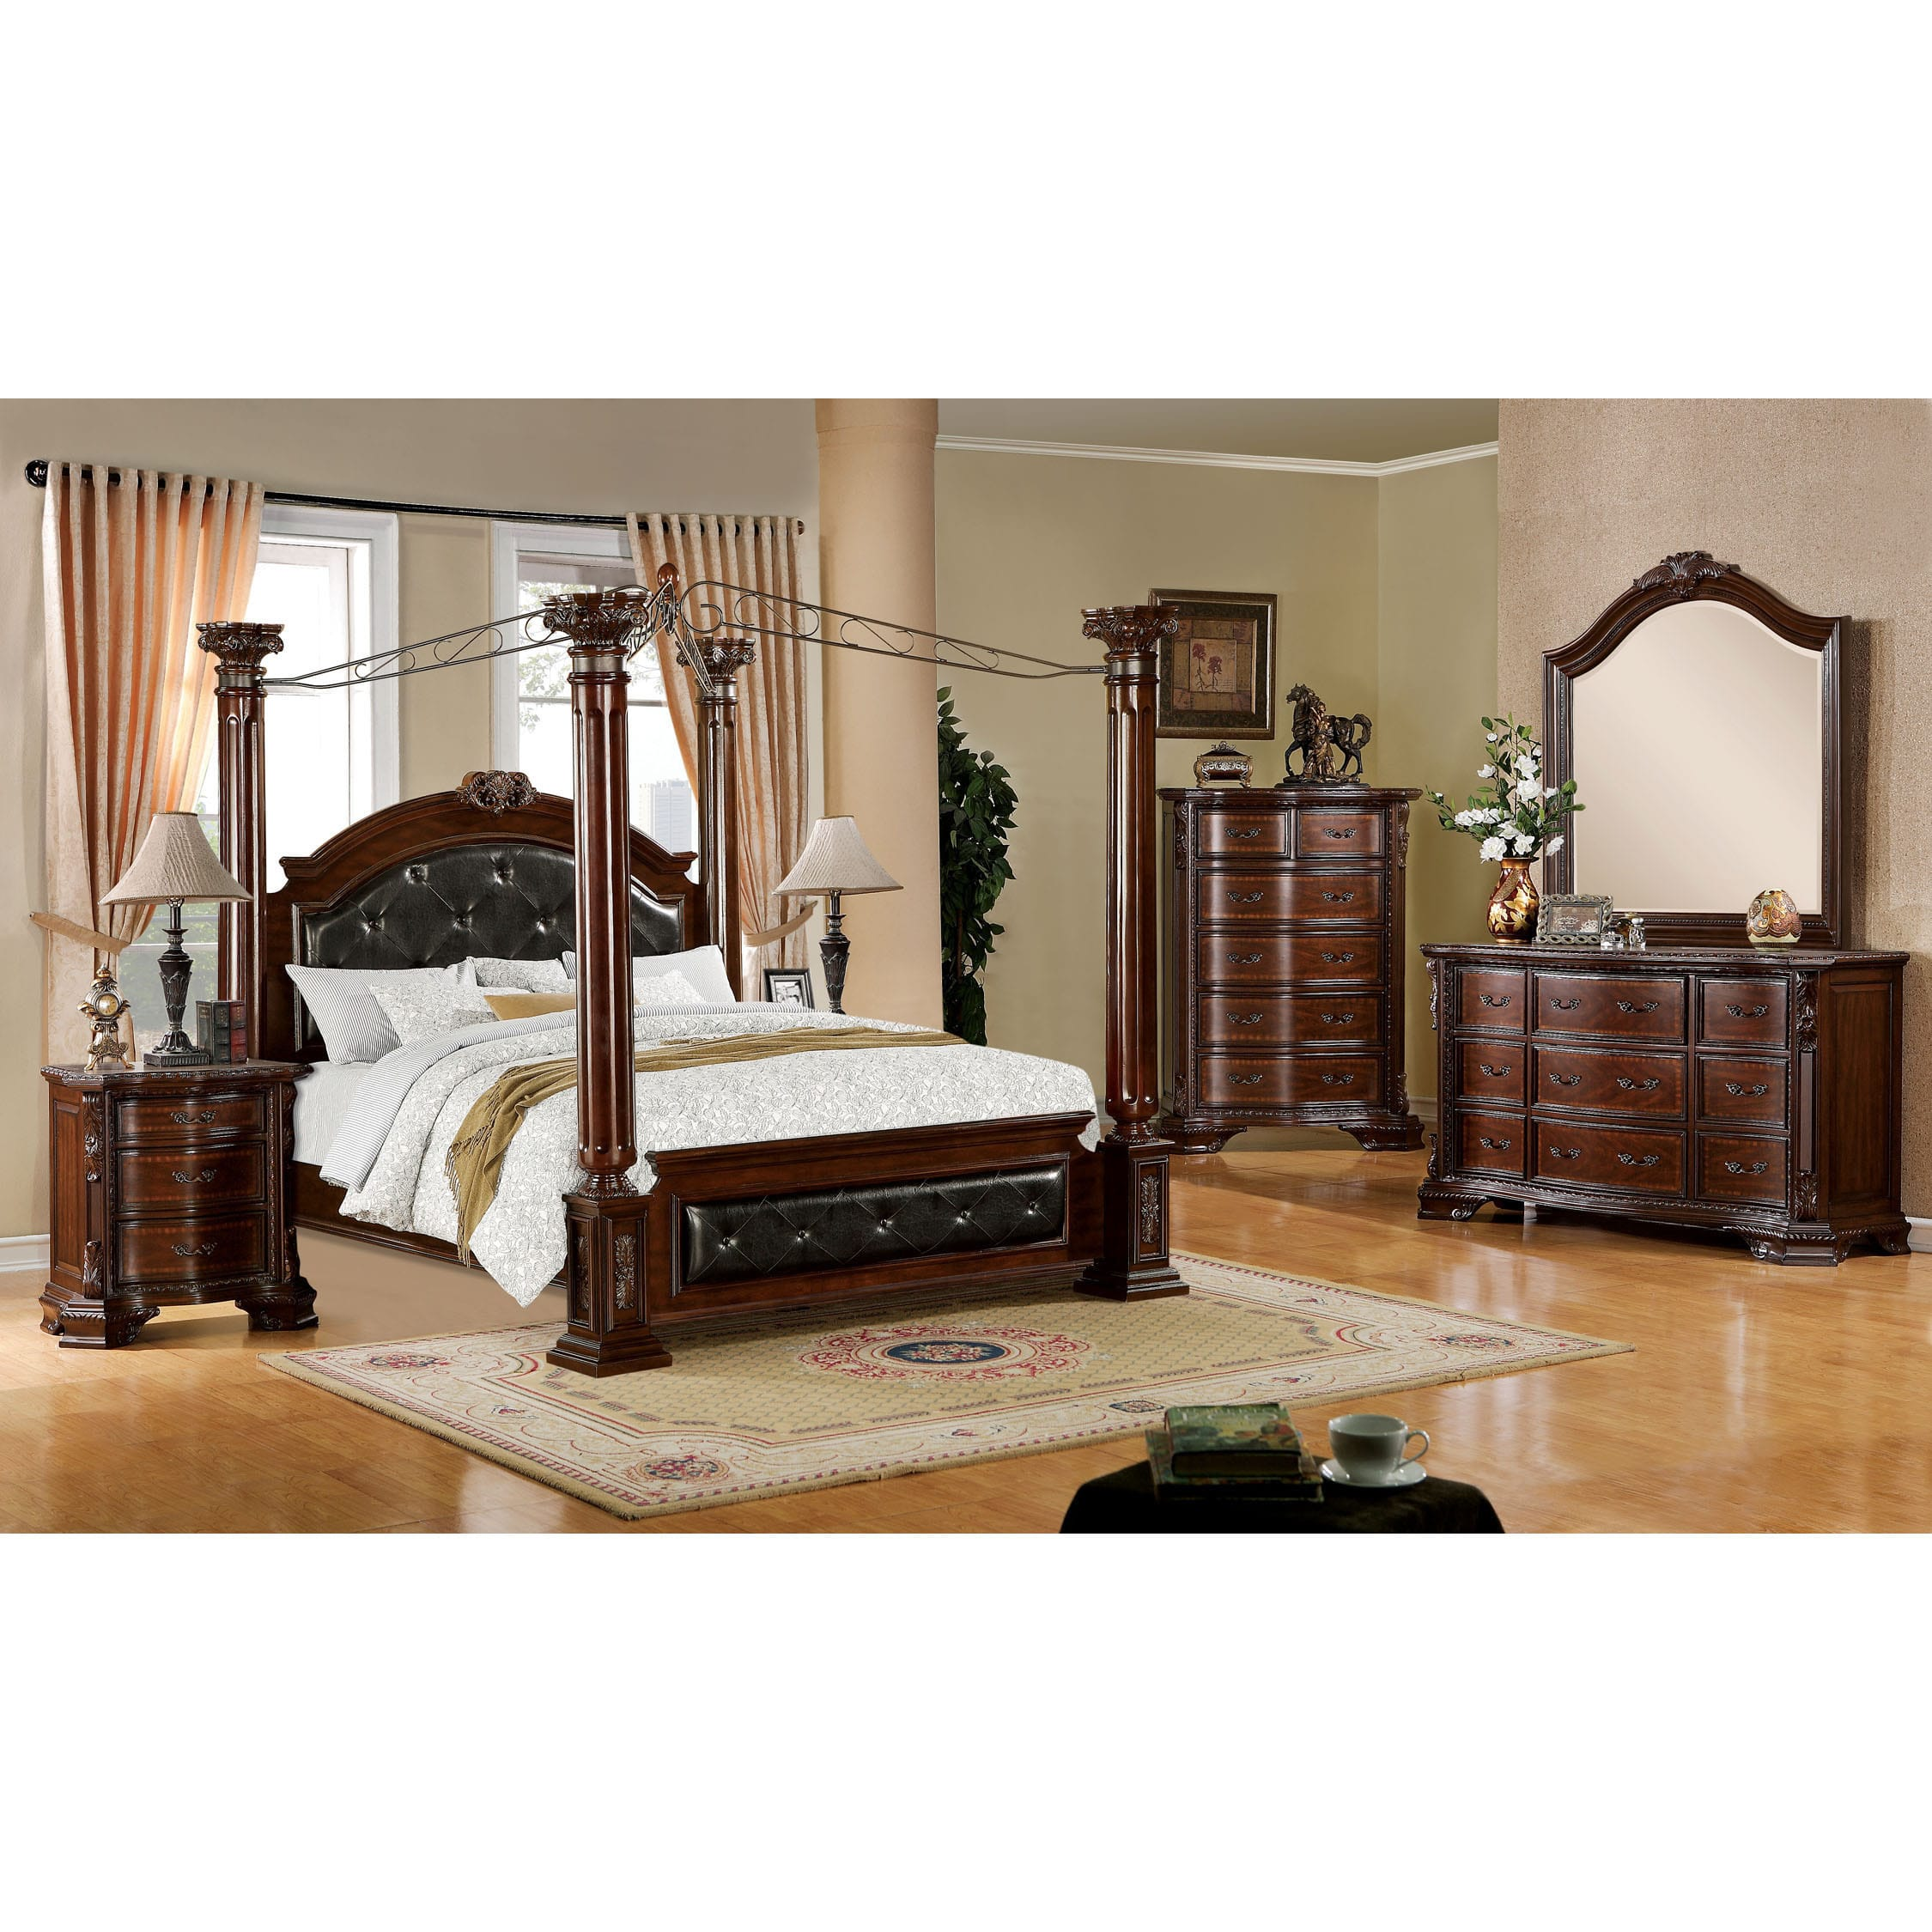 Furniture of America Luxury Brown Cherry 4-Piece Baroque Style Canopy Bedroom Set by Overstock